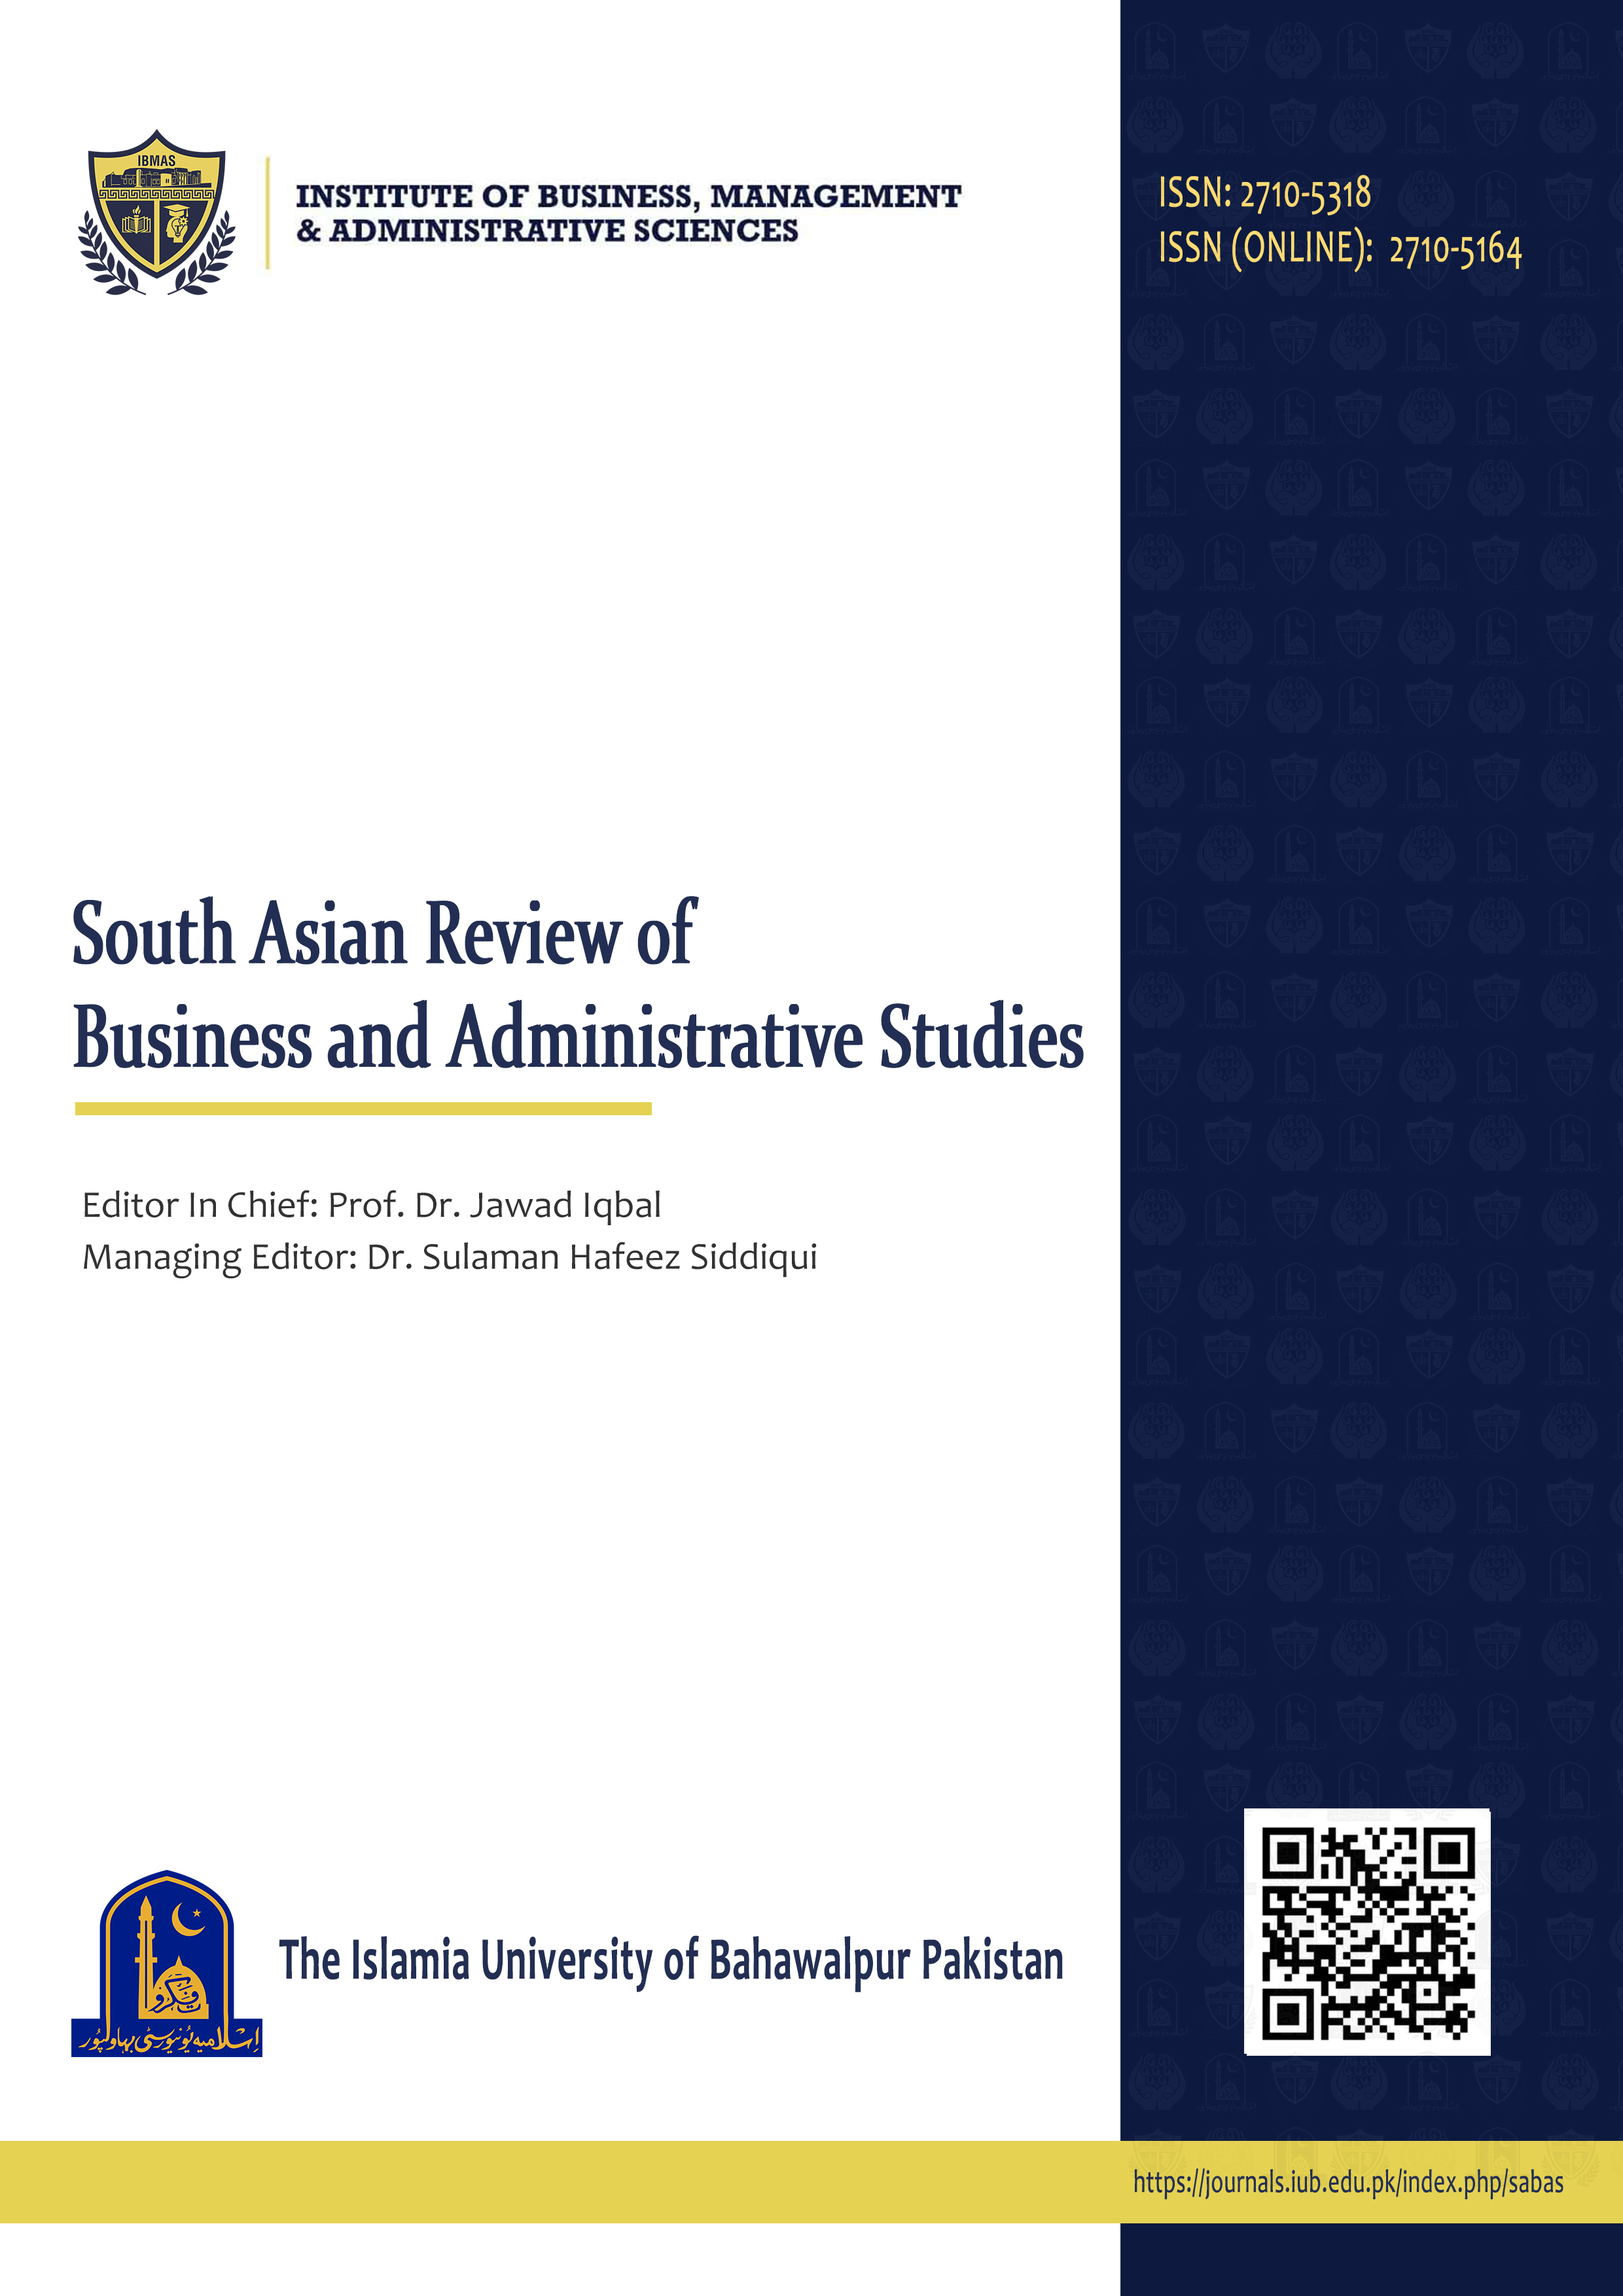 South Asian Review of Business and Administrative Studies (SABAS)